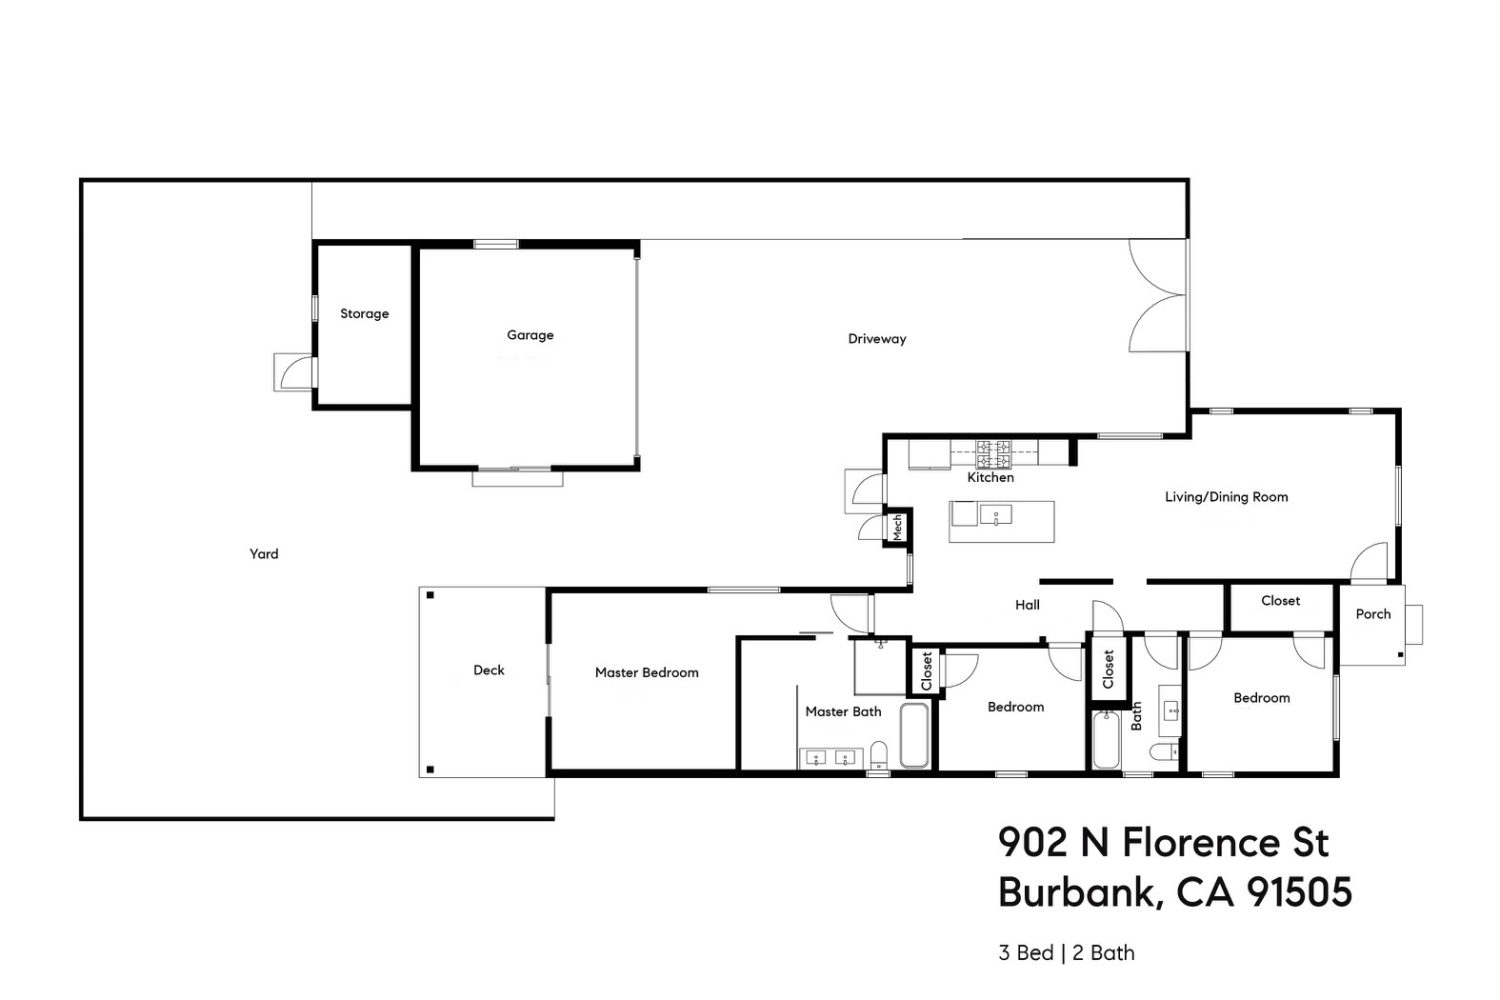 902 N Florence St Burbank Home for Sale Tracy Do Compass